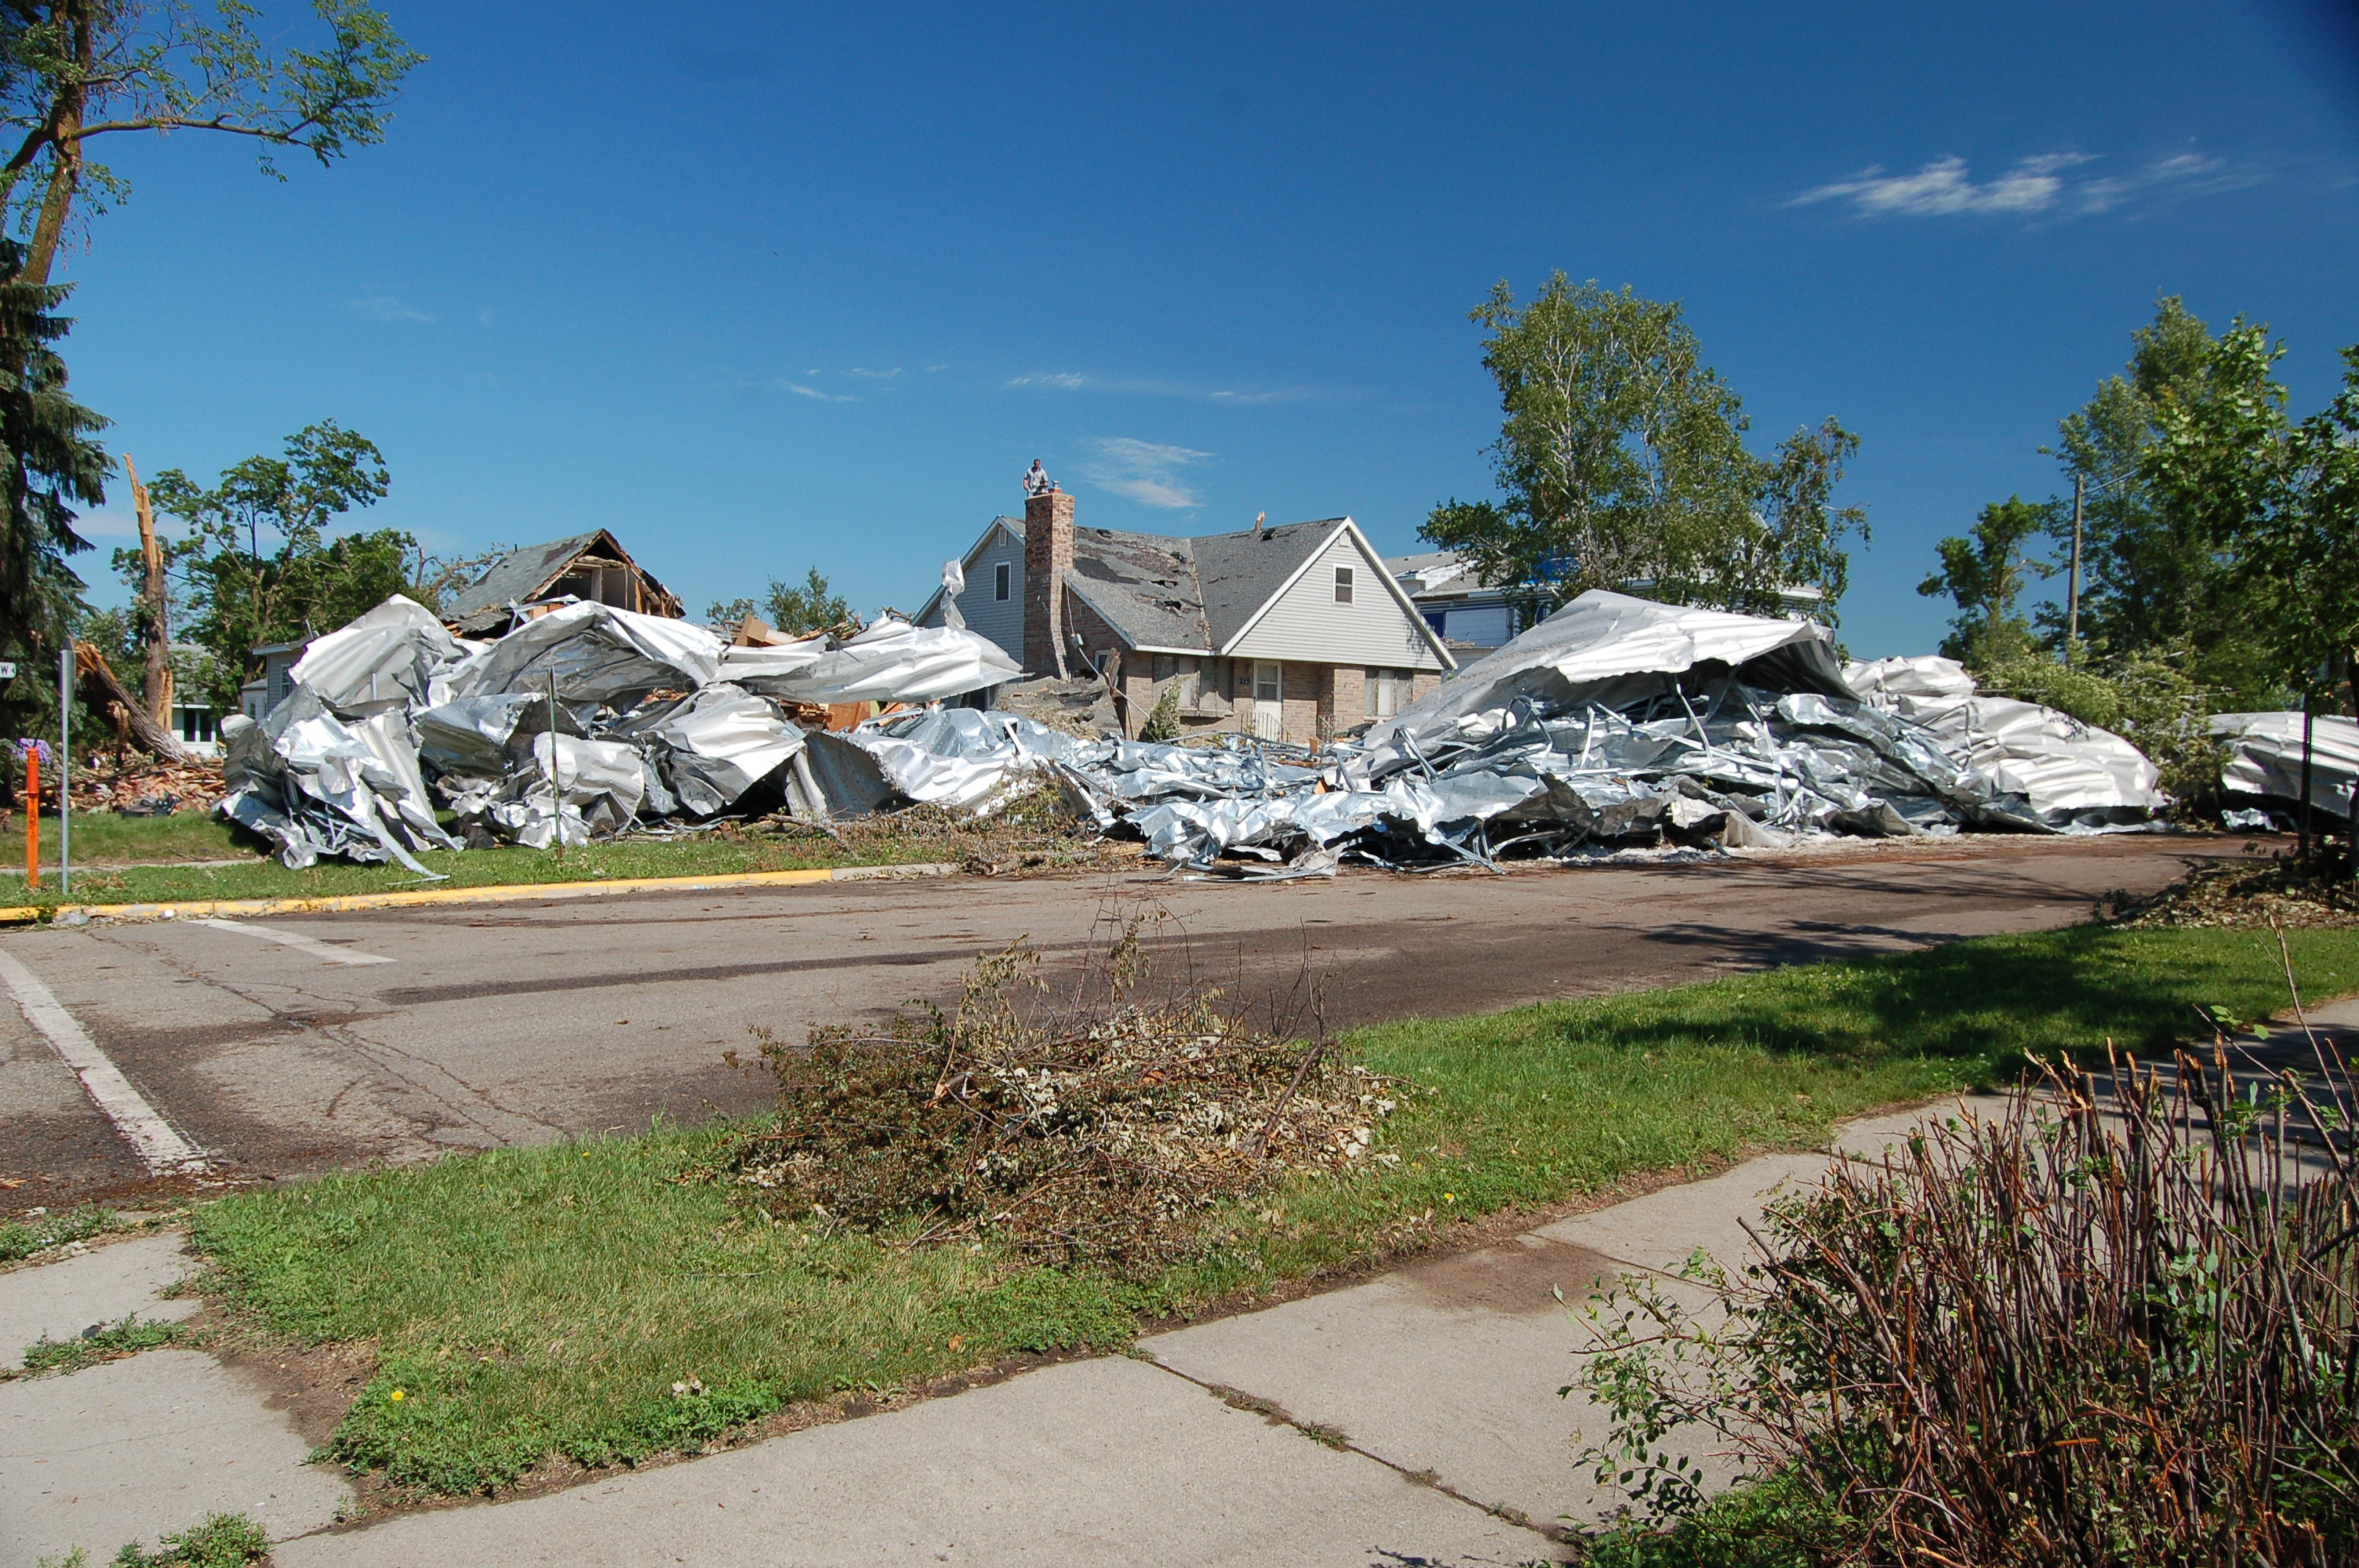 fema - 44748 - tornado damage and debris in minnesota.jpg